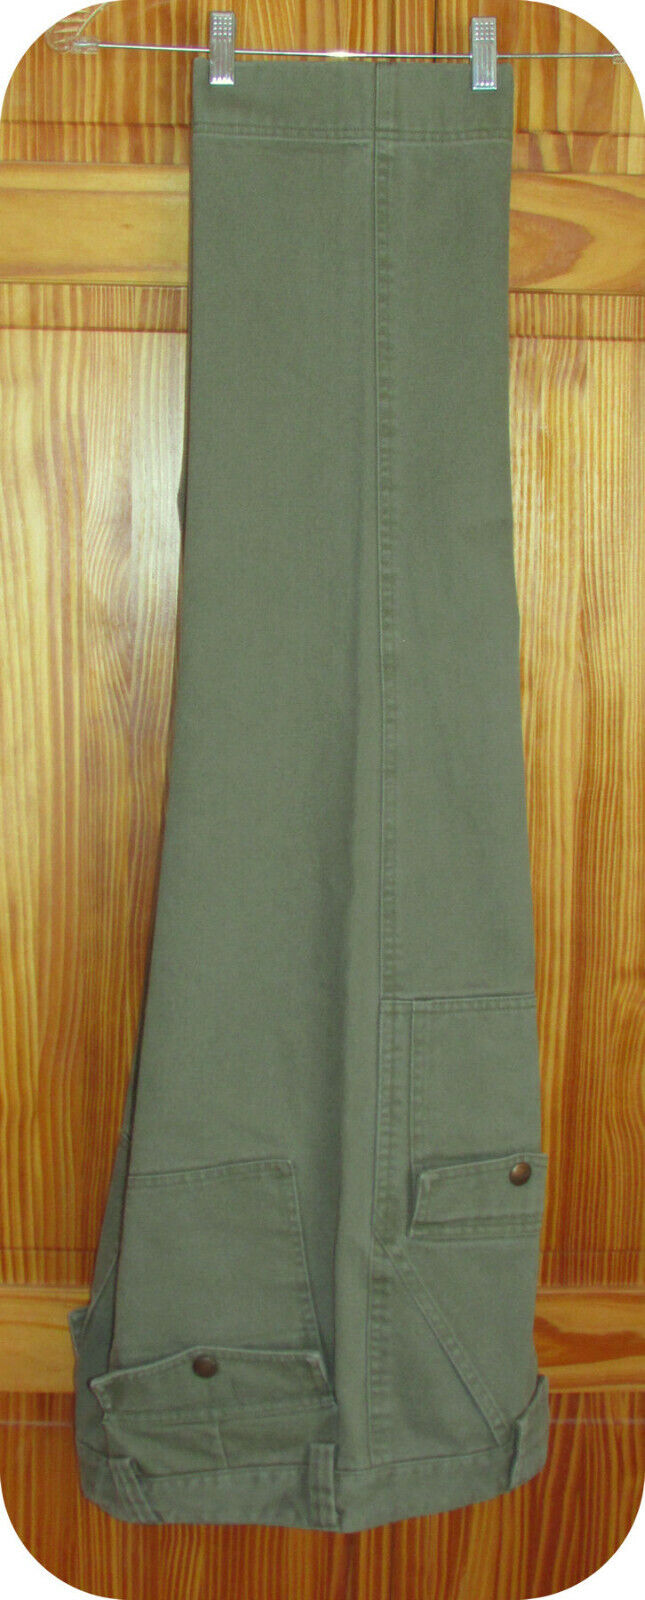 L.L. Bean Men's Signature FireHose Jeans 35x30 Olive Green 100% Cotton